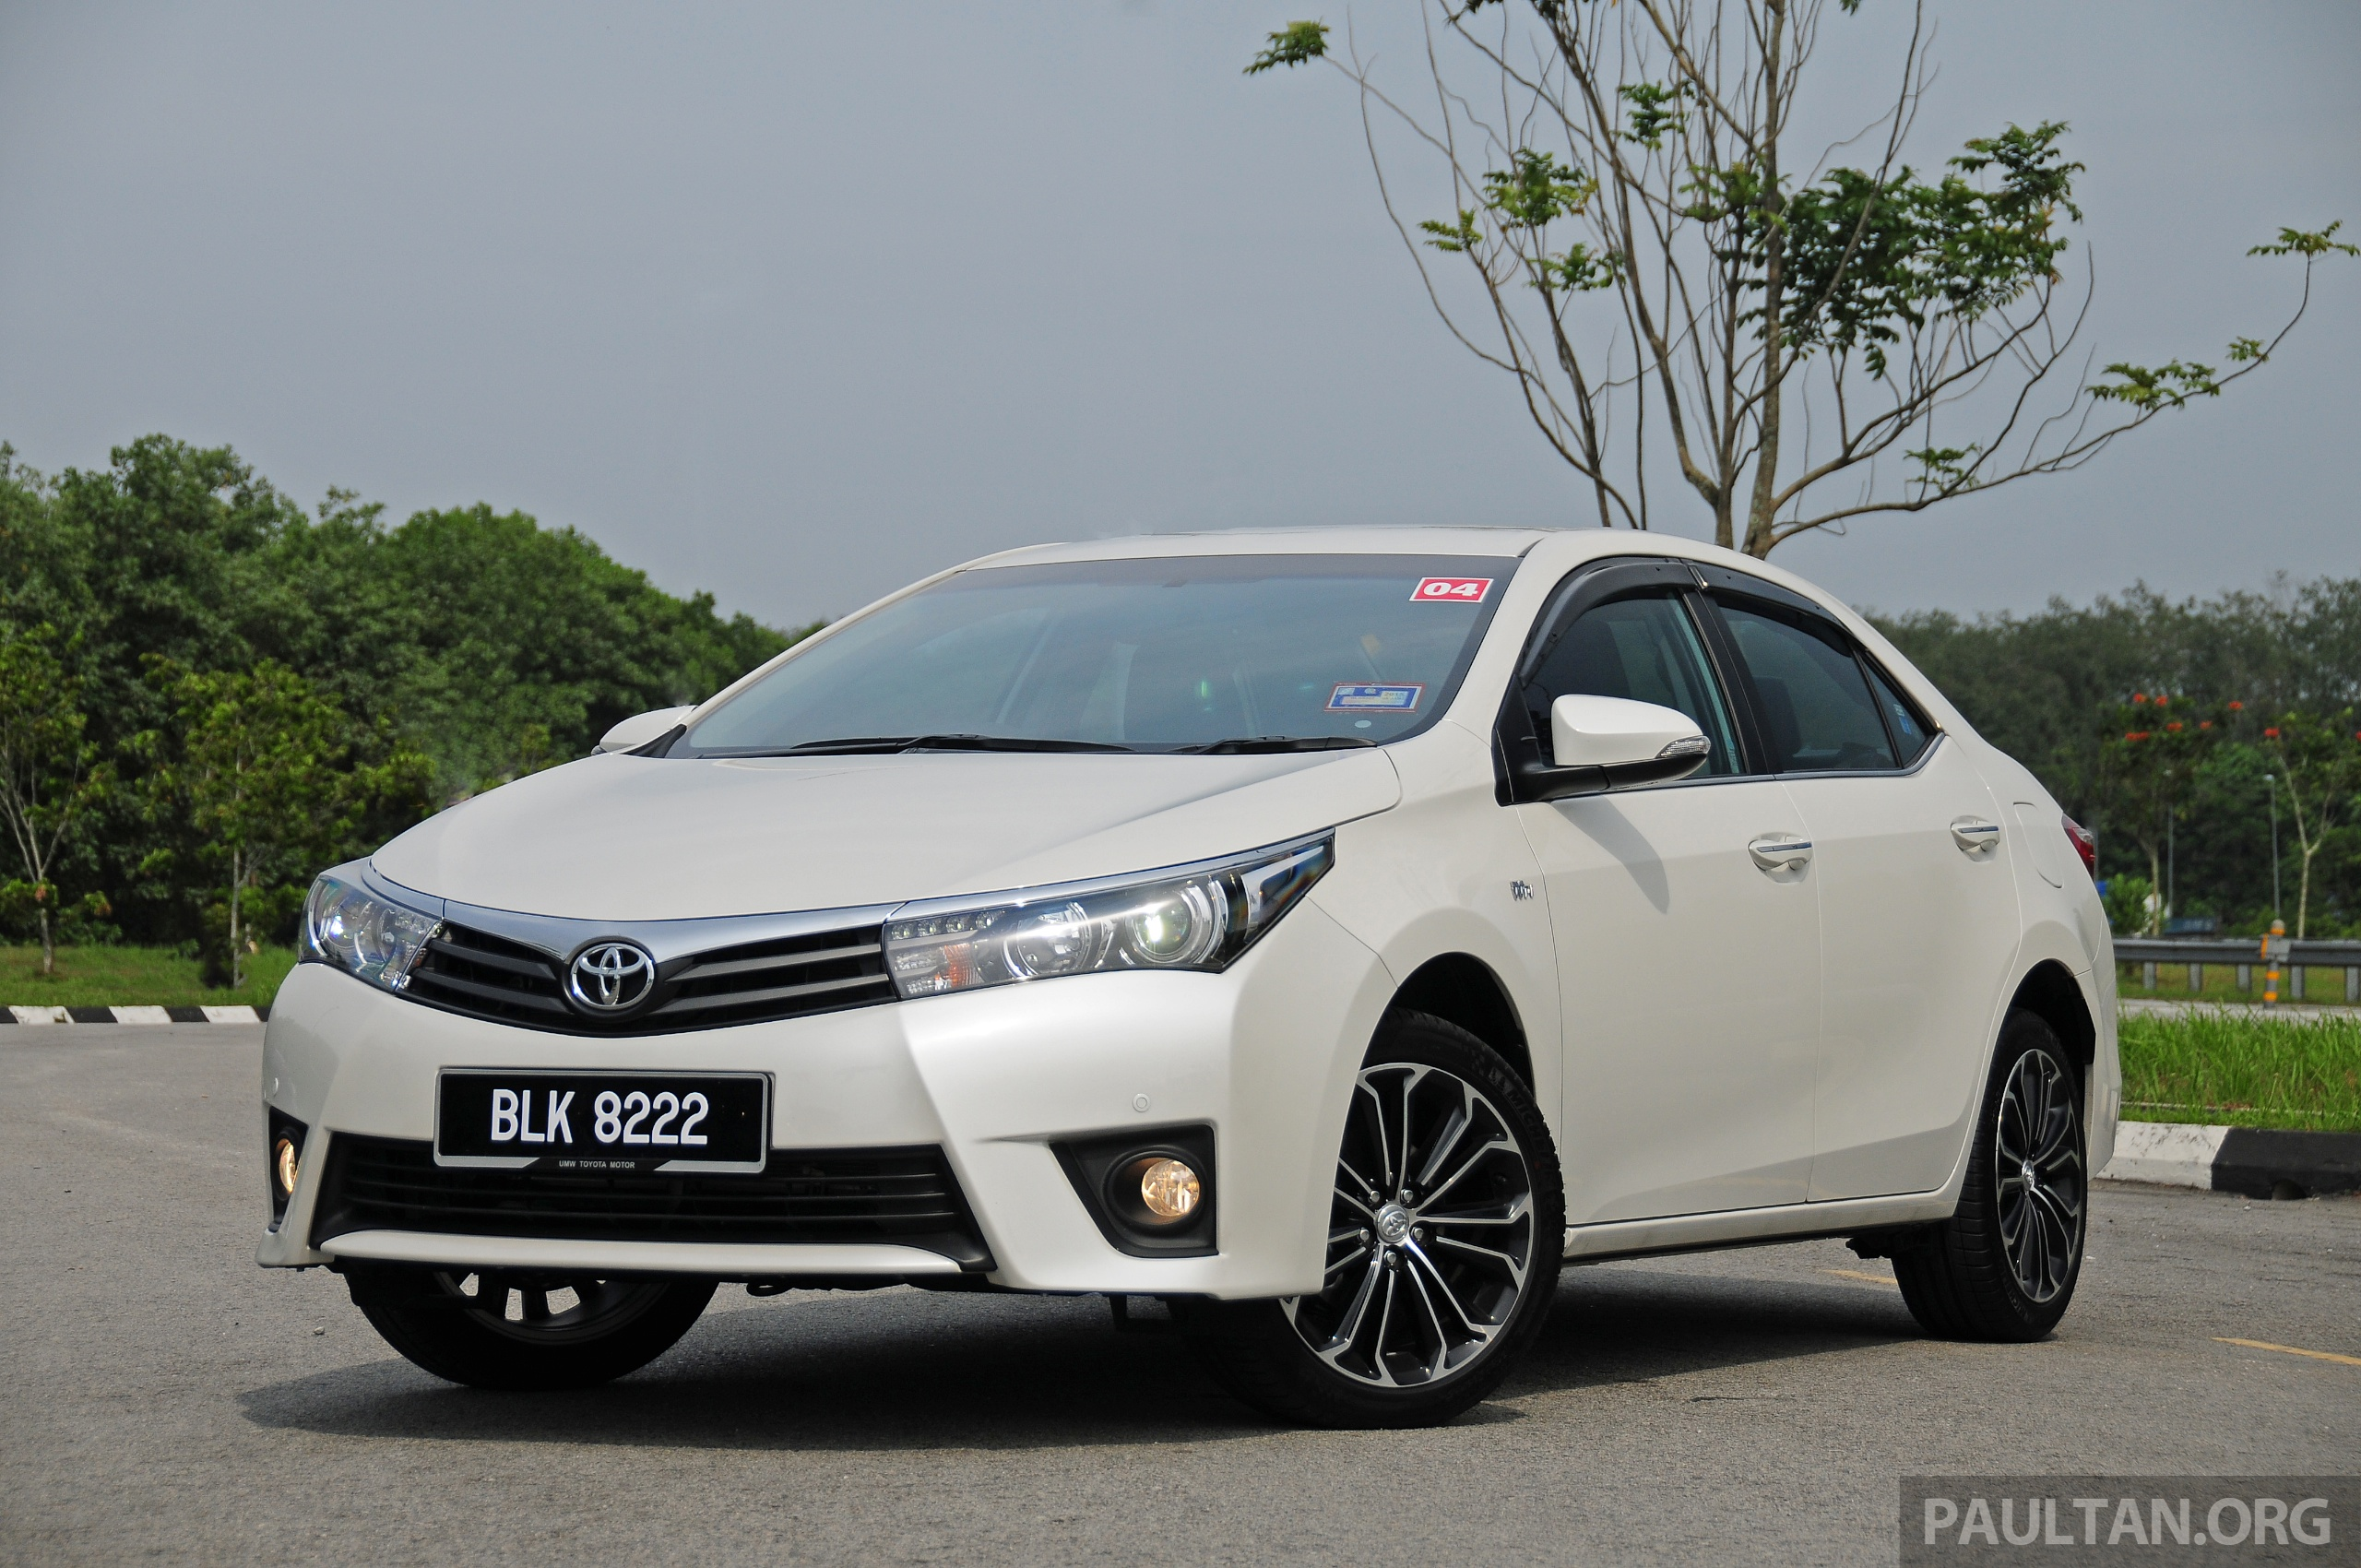 Driven 2014 toyota corolla altis 2 0v on local roads image 222434